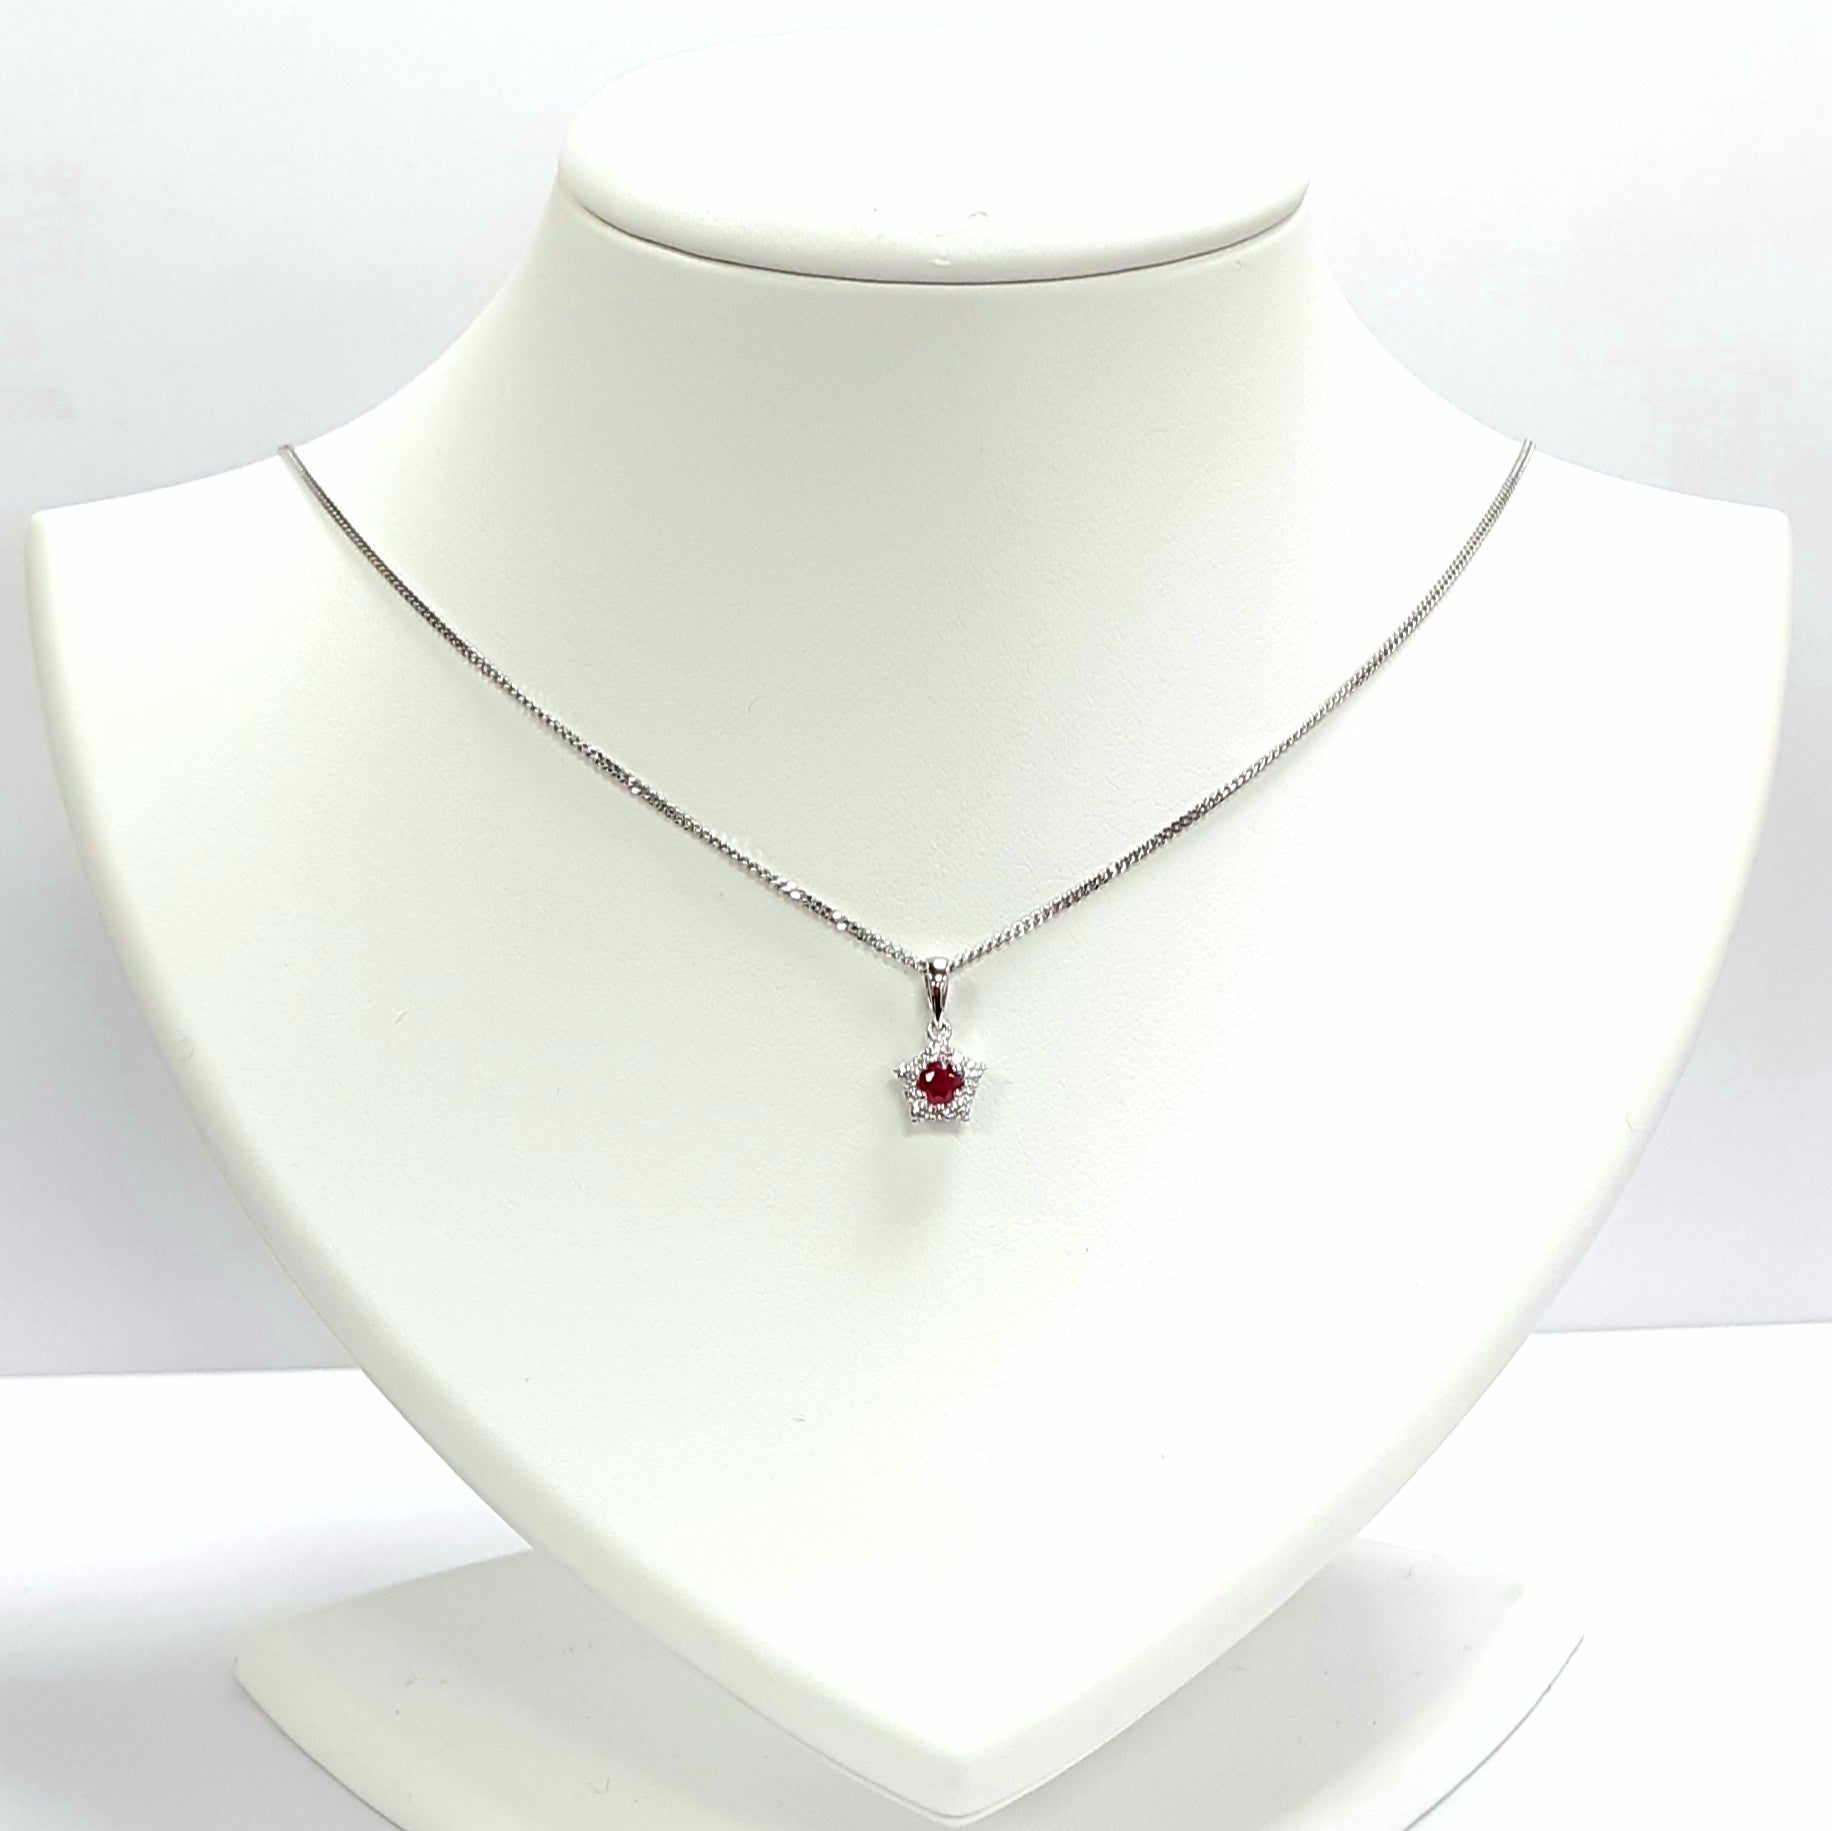 Details about  /Solid 925 Sterling Silver Ruby Pendant Necklace Women PSV-1056